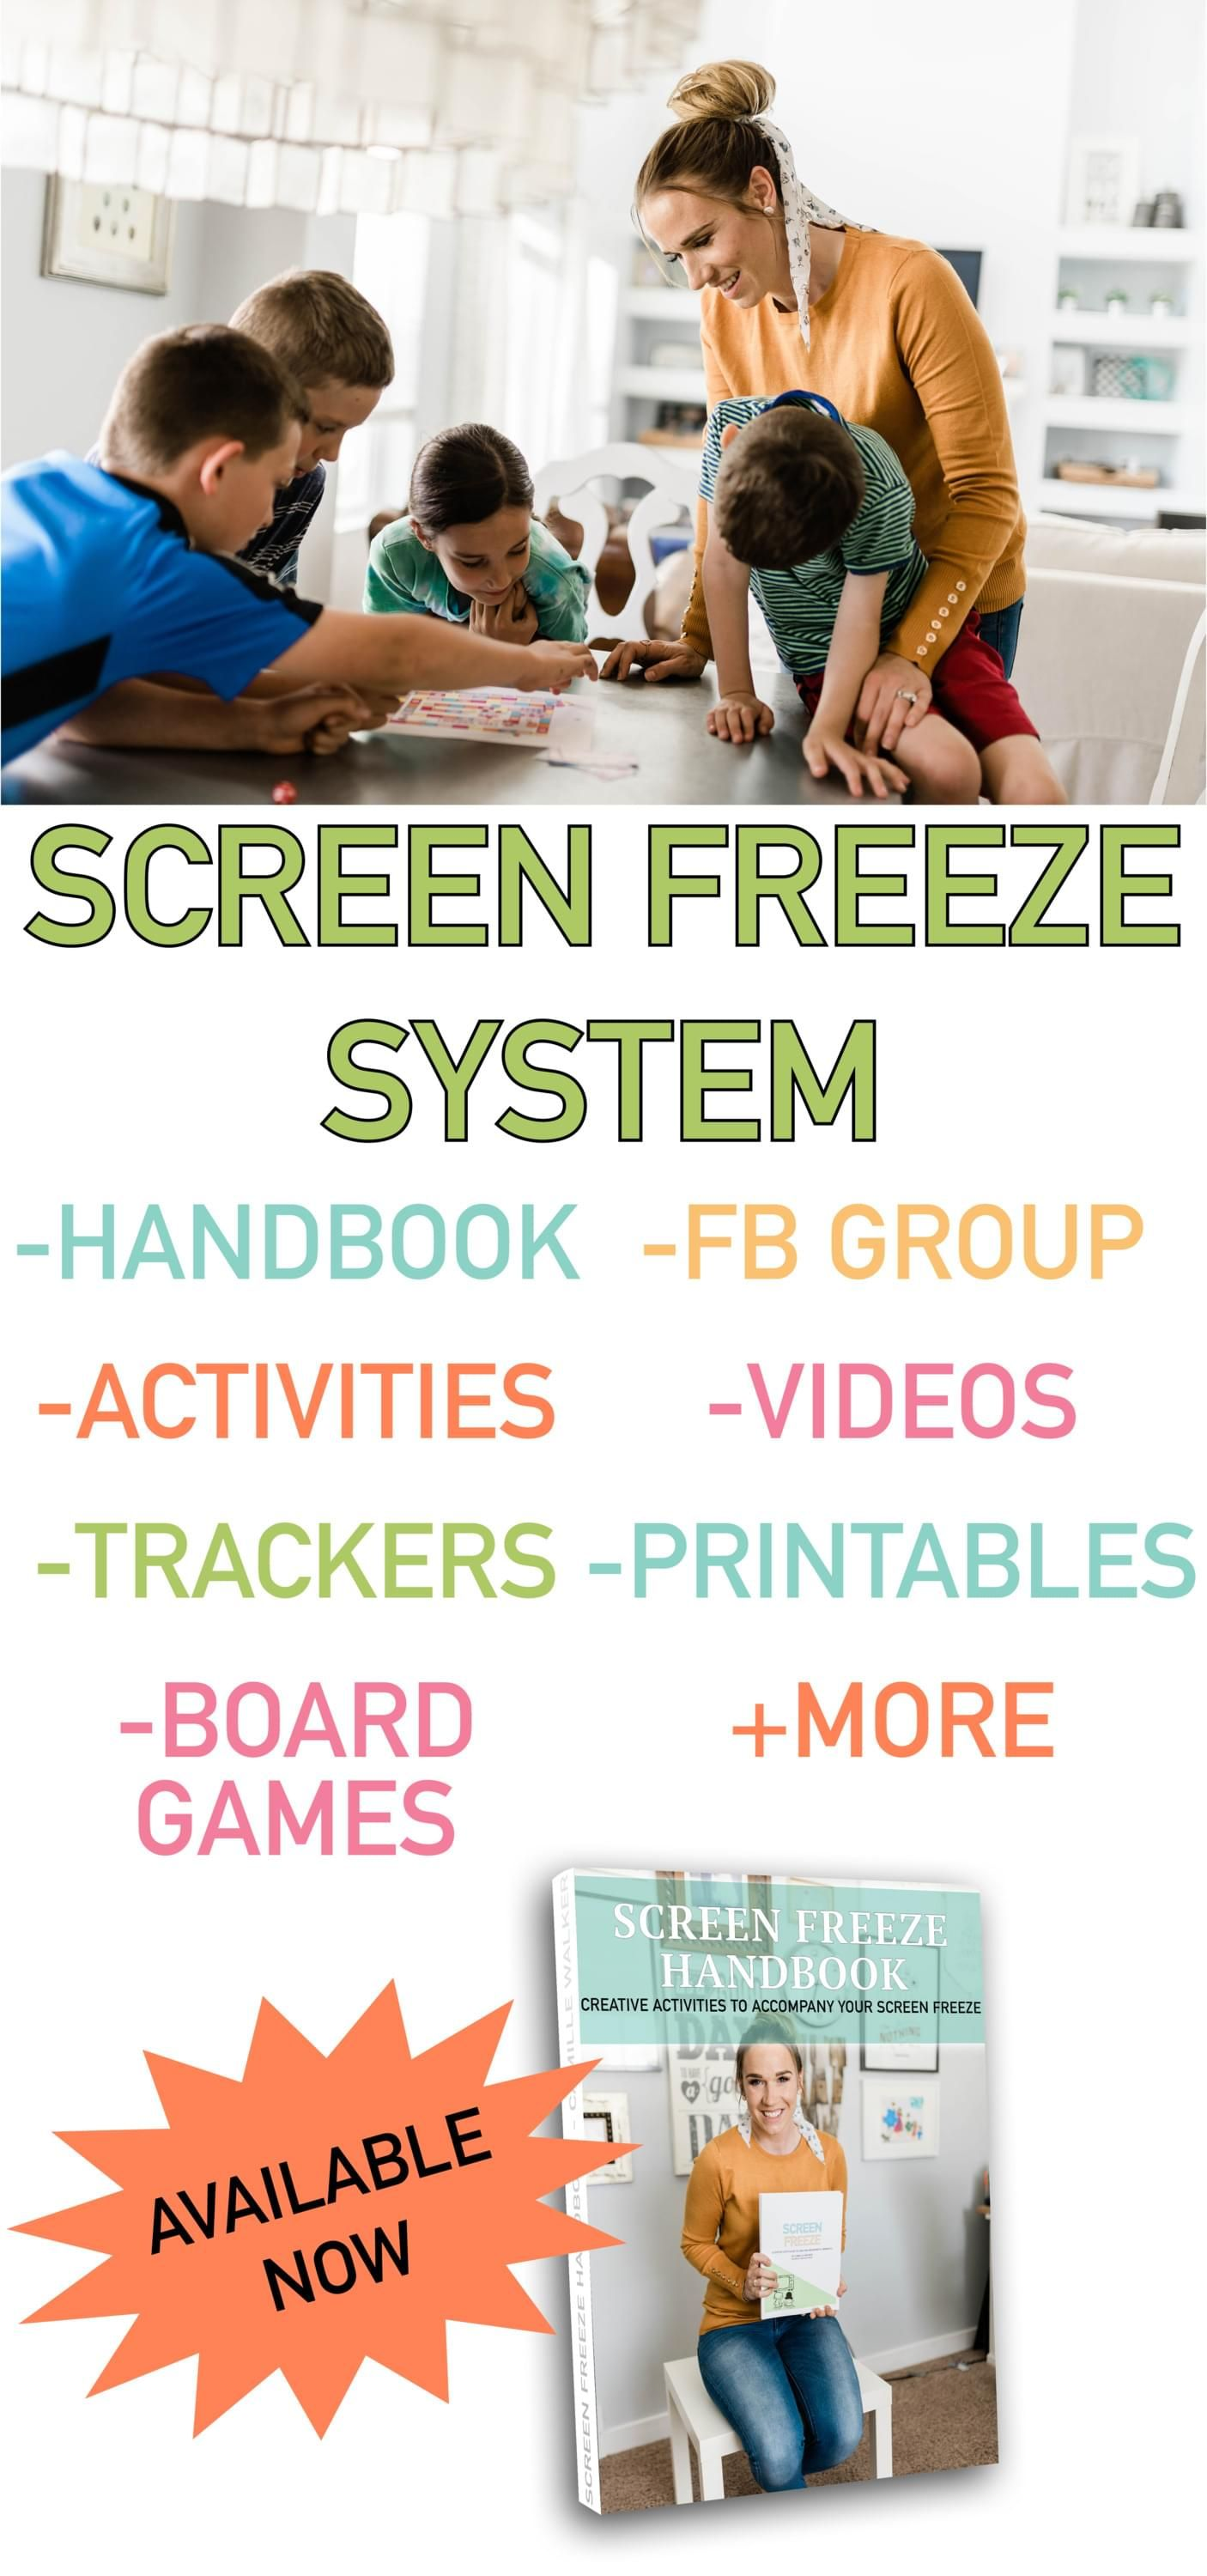 My Child Is Addicted To Screens Working With Families With >> If Your Child Struggles With An Addiction To Electronics Video